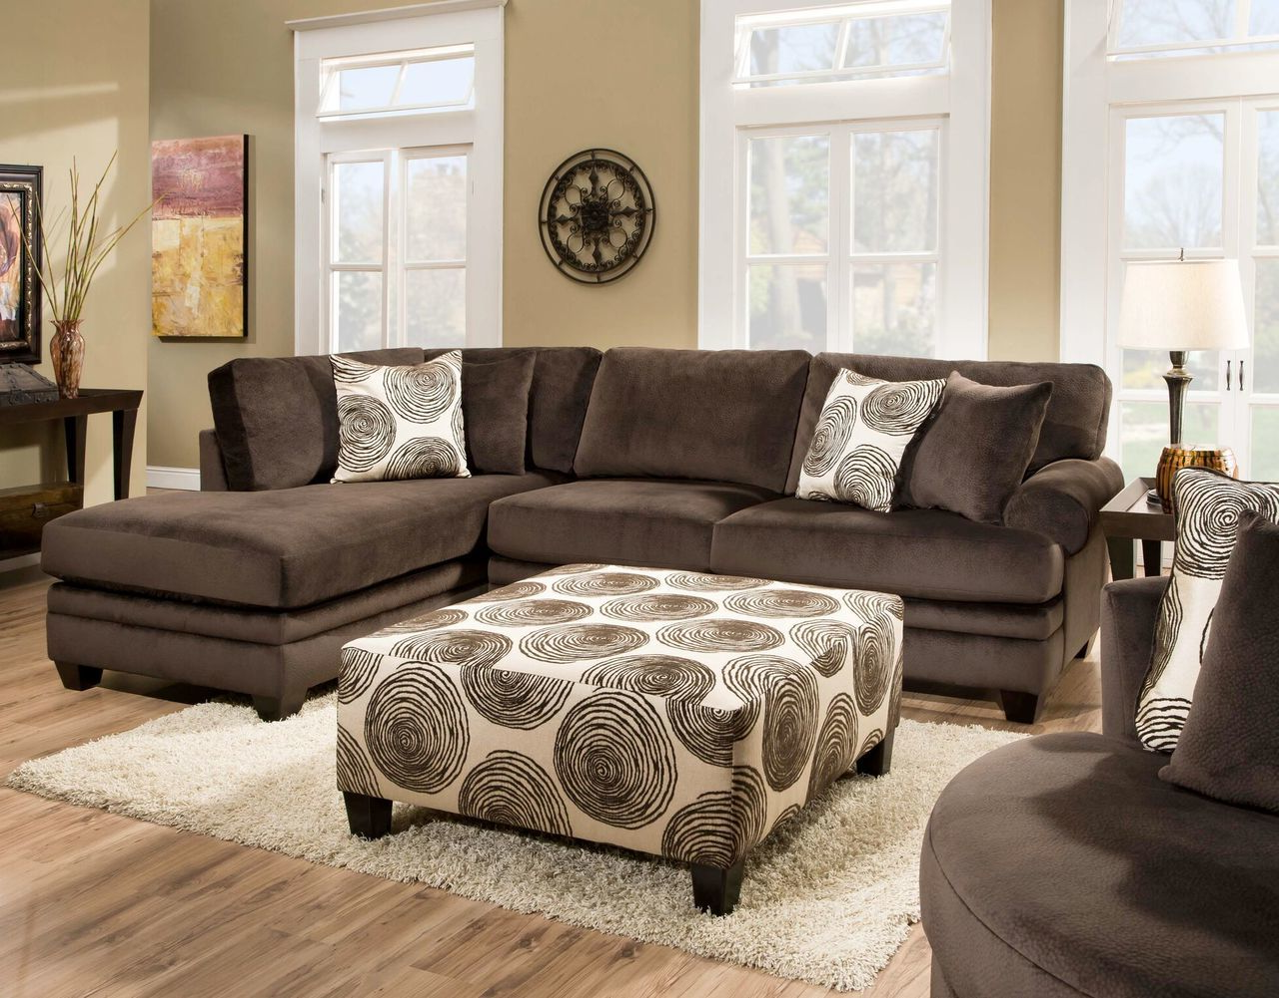 Groovy Chocolate 2 Piece Chaise Sectional